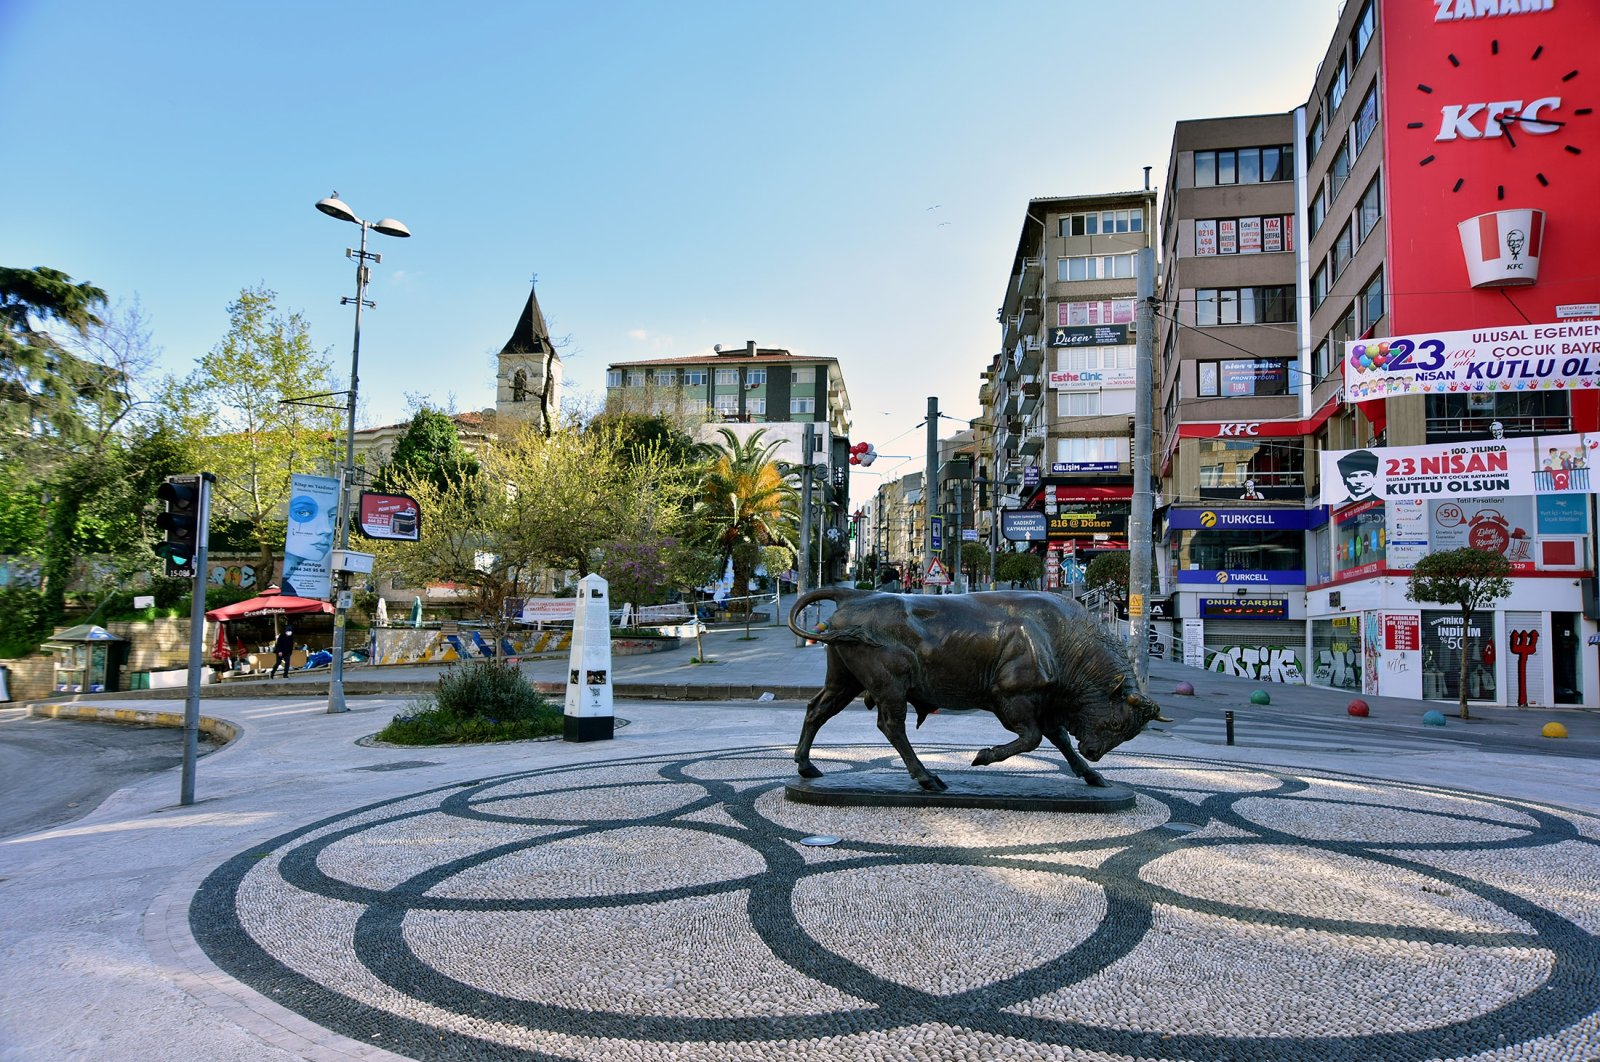 Bull statue at the Kadıköy square in Istanbul. (Shutterstock Photo)